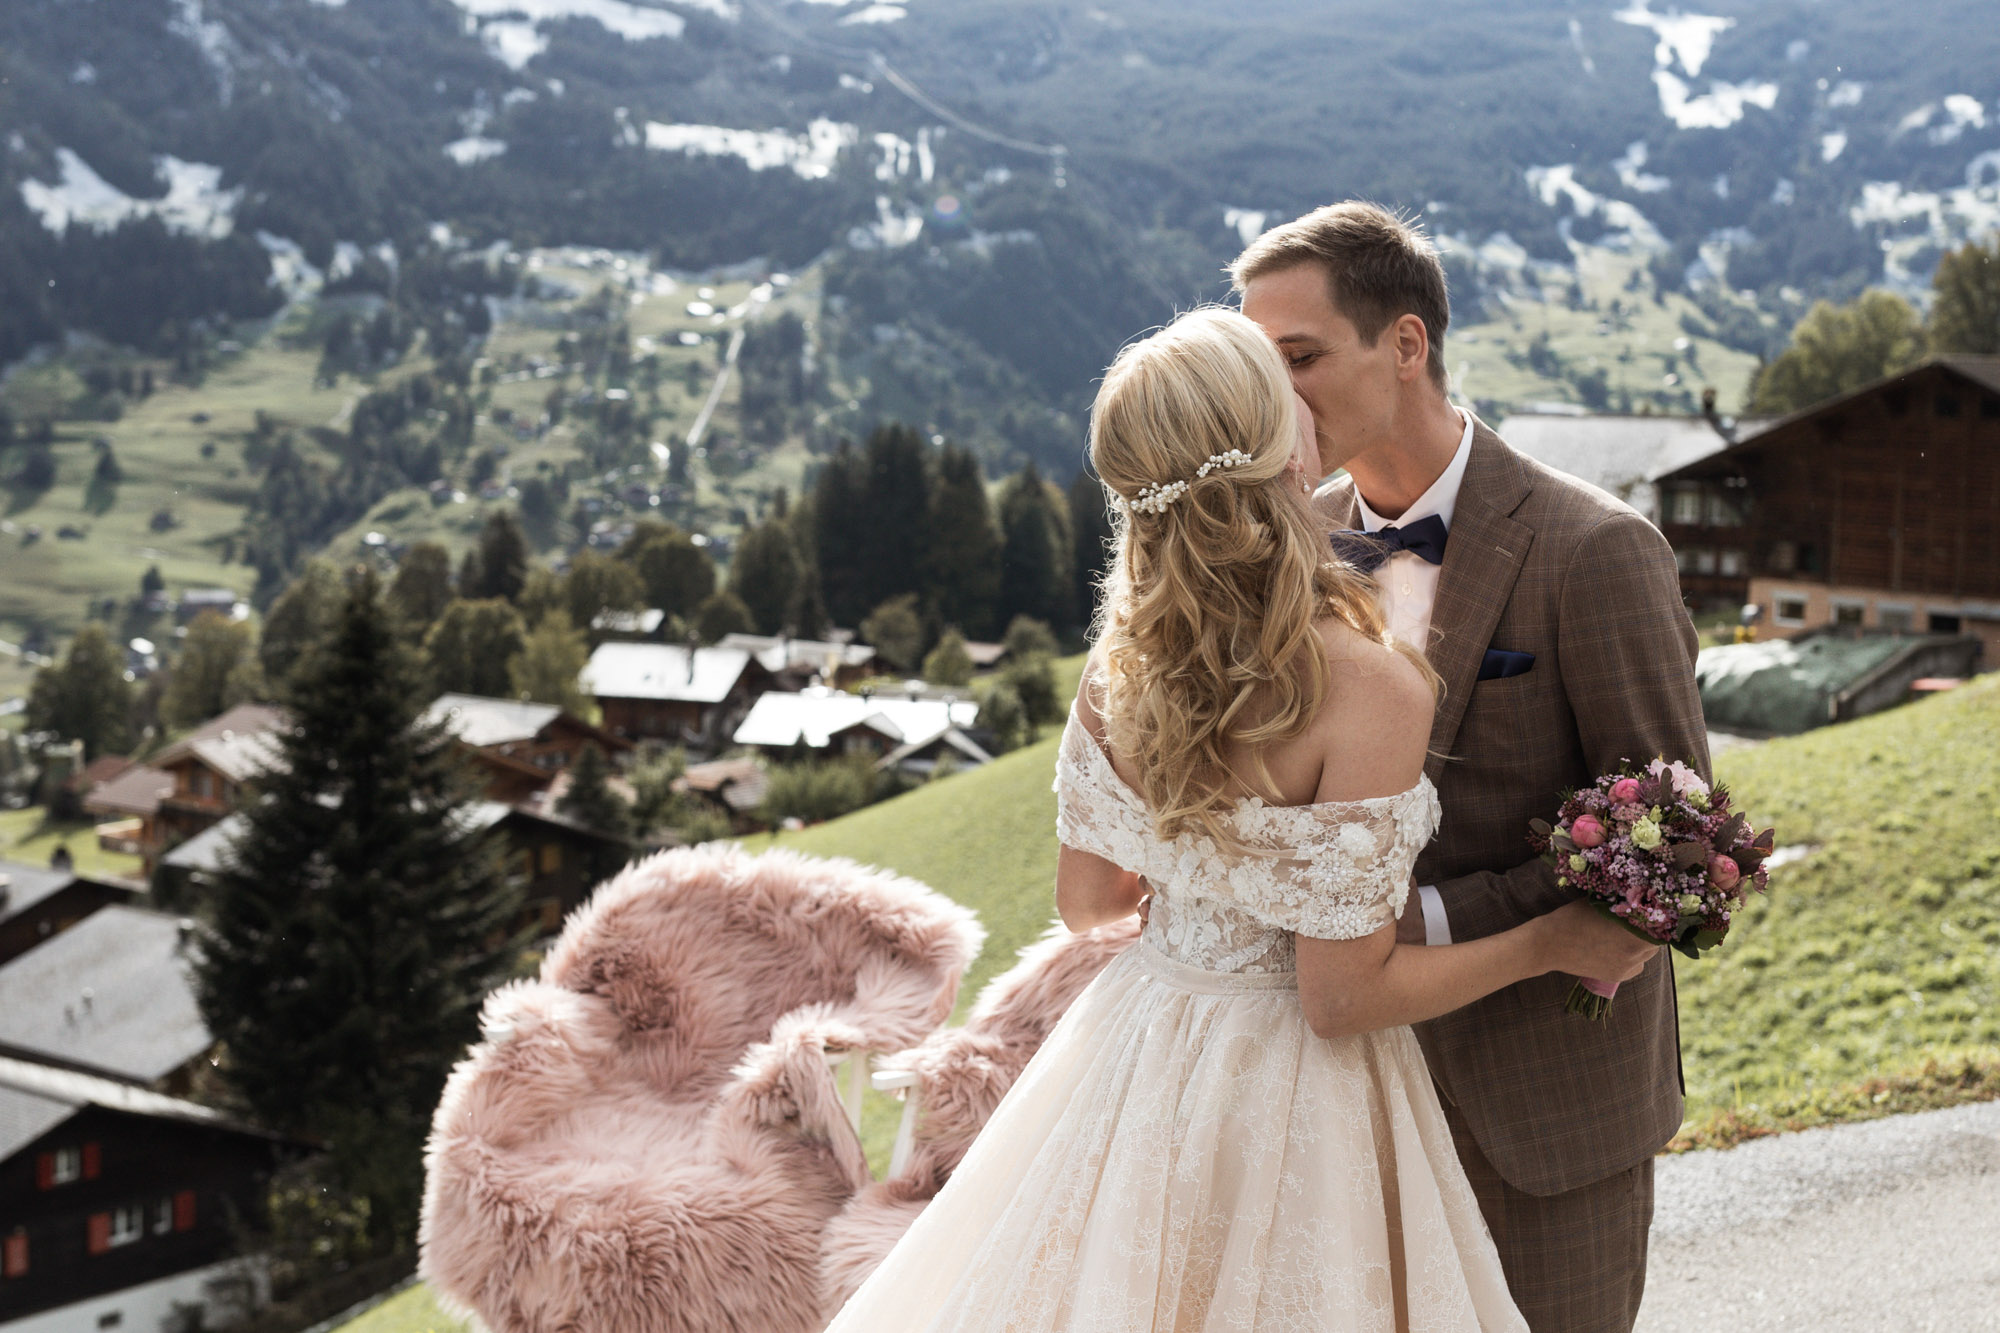 Hochzeit Grindelwald - Destination Wedding - Intimate Wedding - First Look - Hochzeitsfotograf Nicole.Gallery Basel